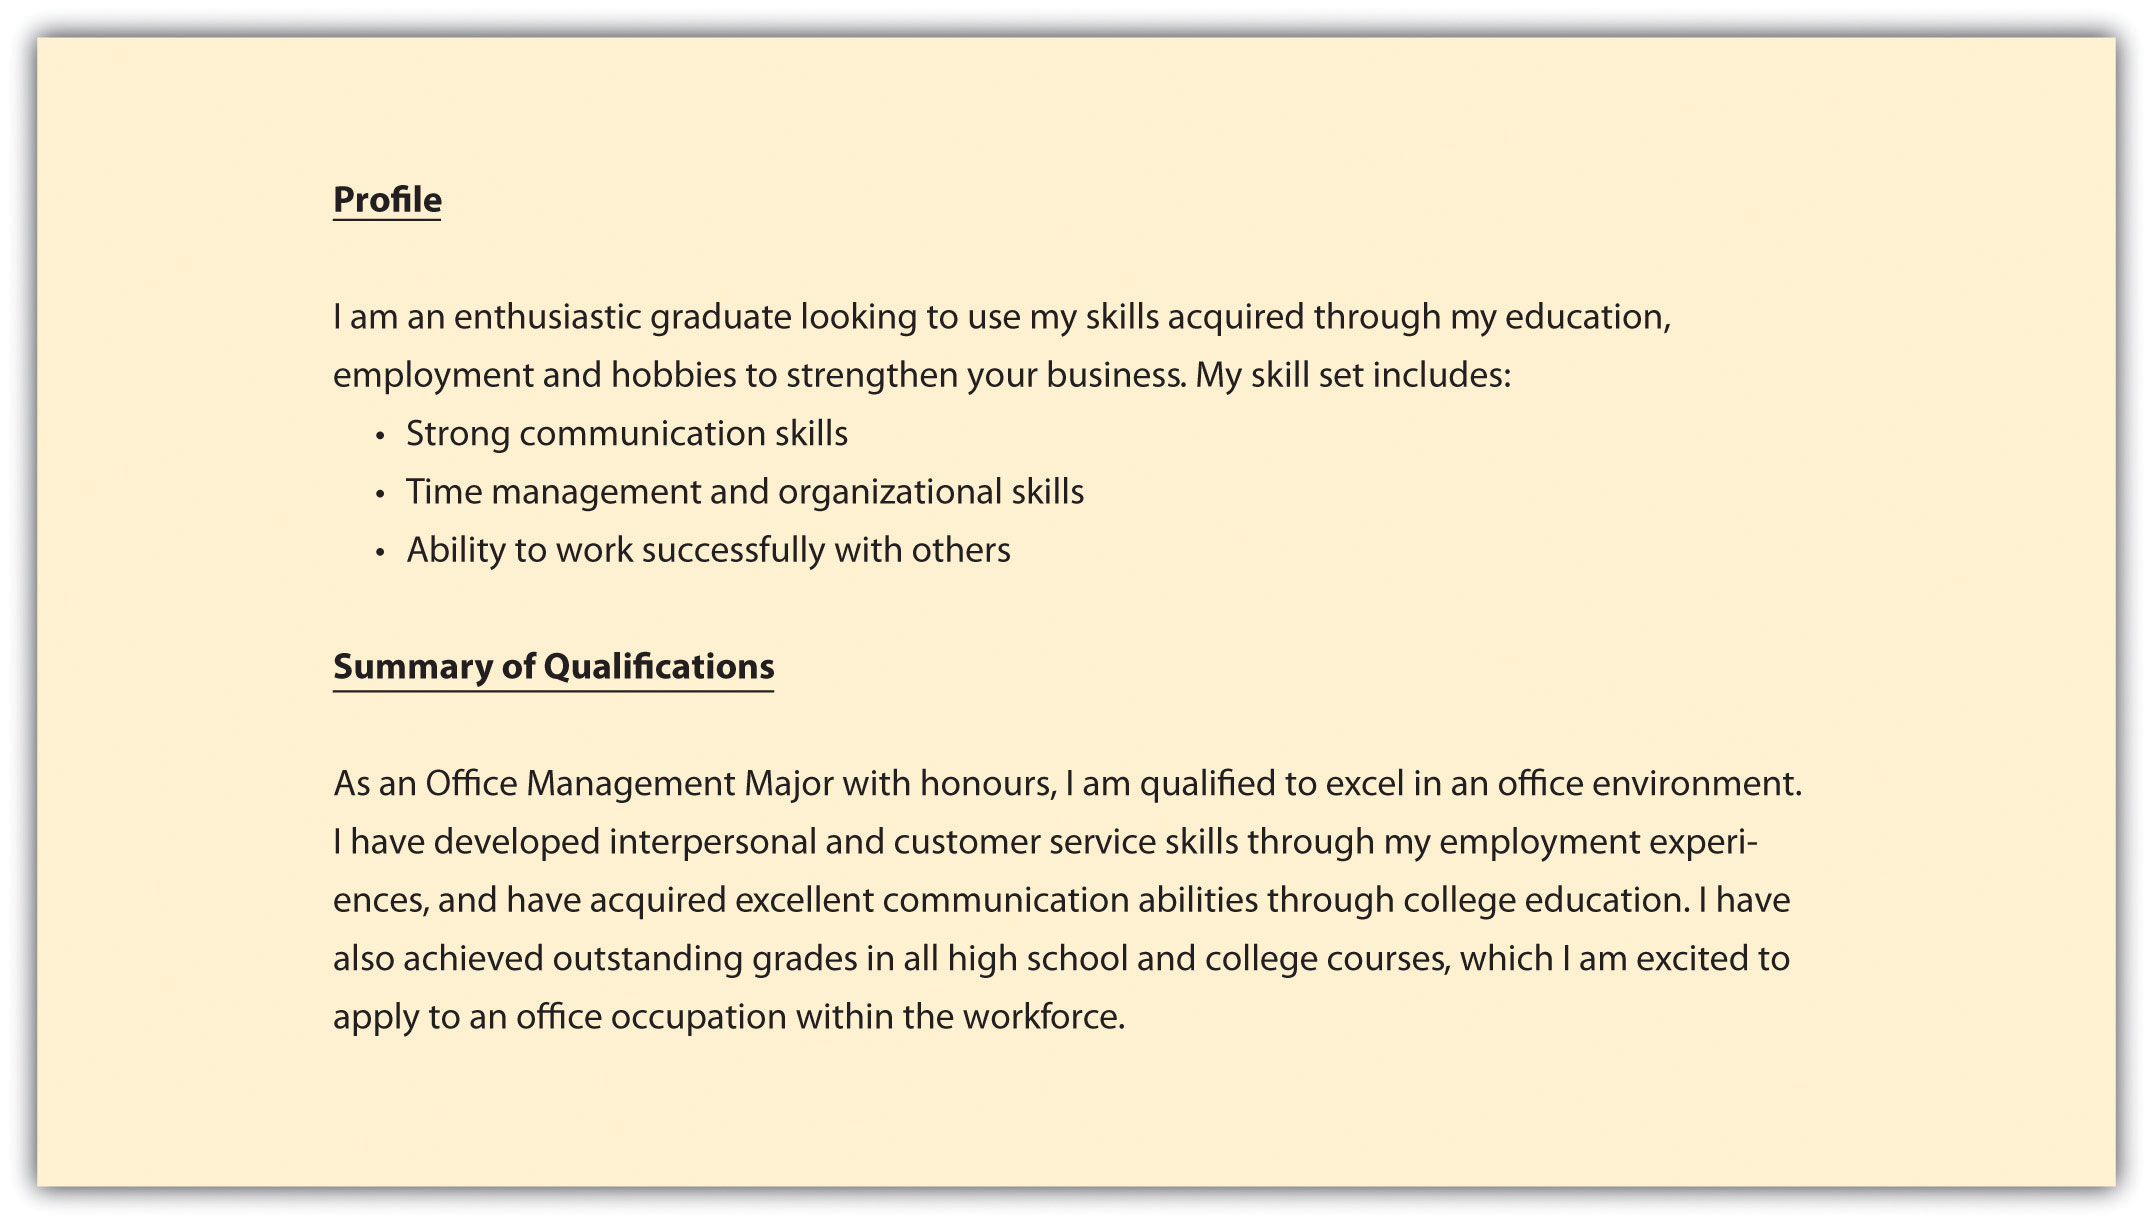 profile or summary of qualifications - Sample Resume Business Communication